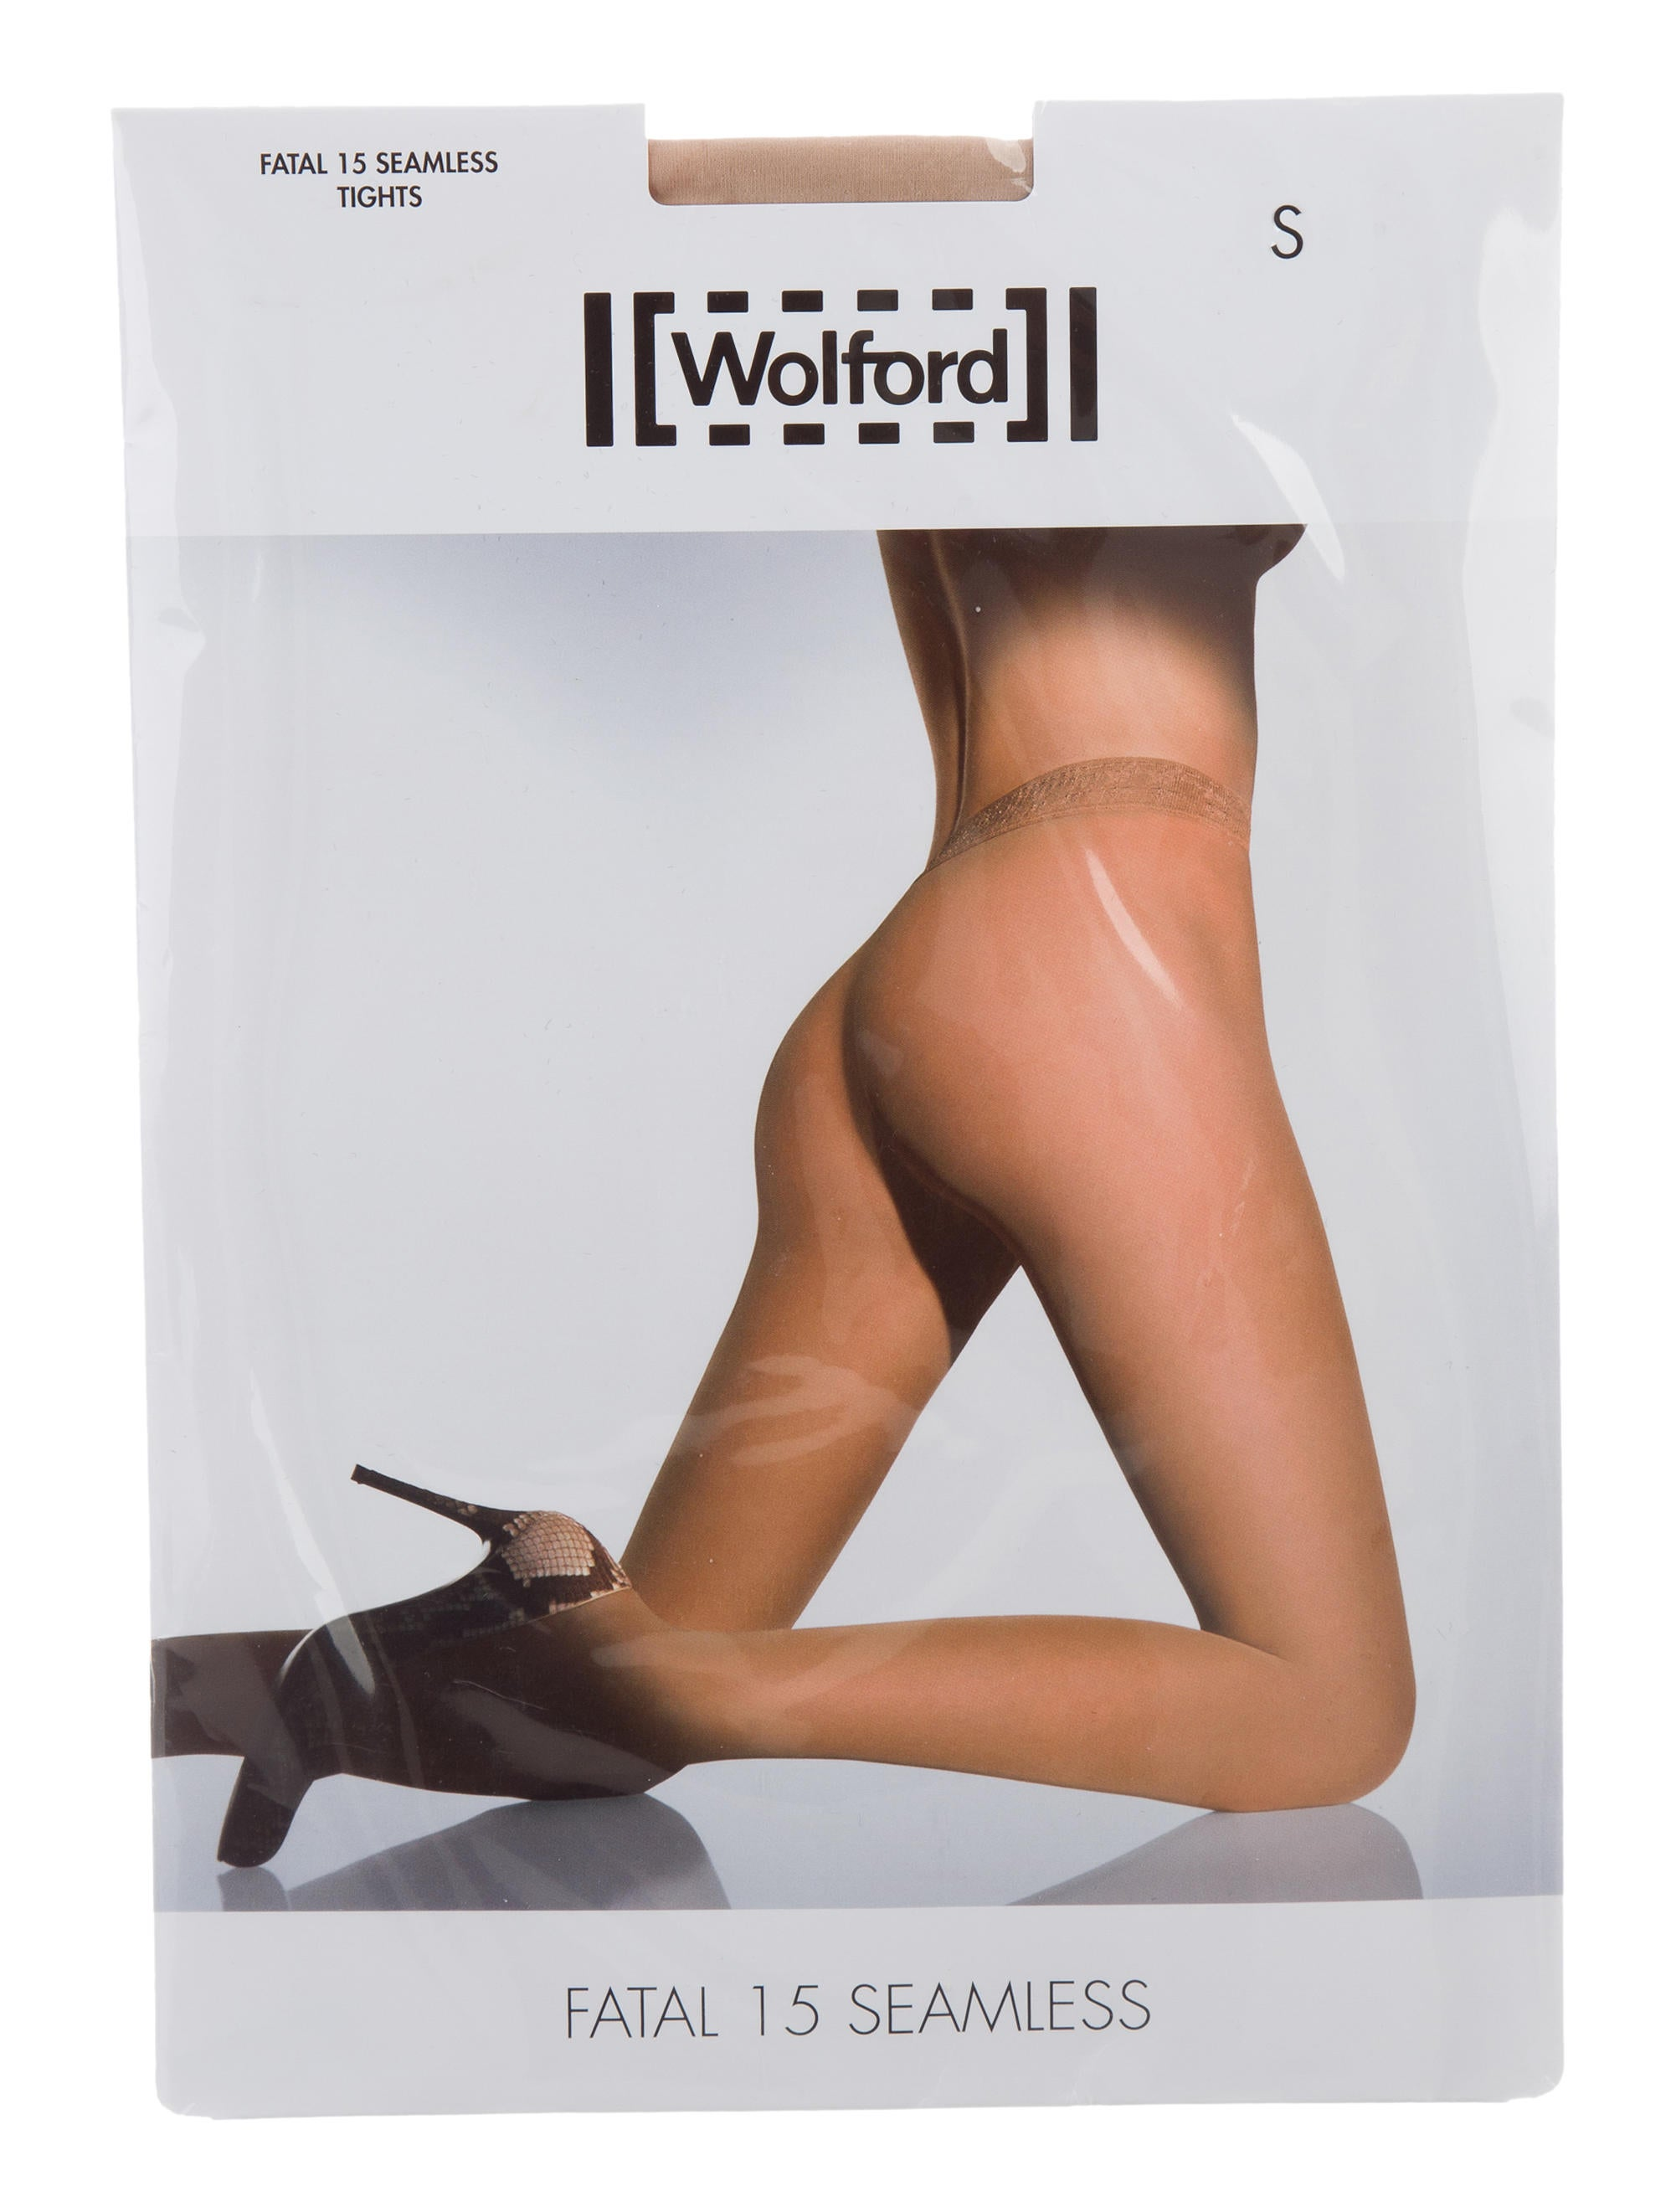 a3d449bf4 Wolford Fatal 15 Seamless Tights w  Tags - Accessories - WWF22209 ...